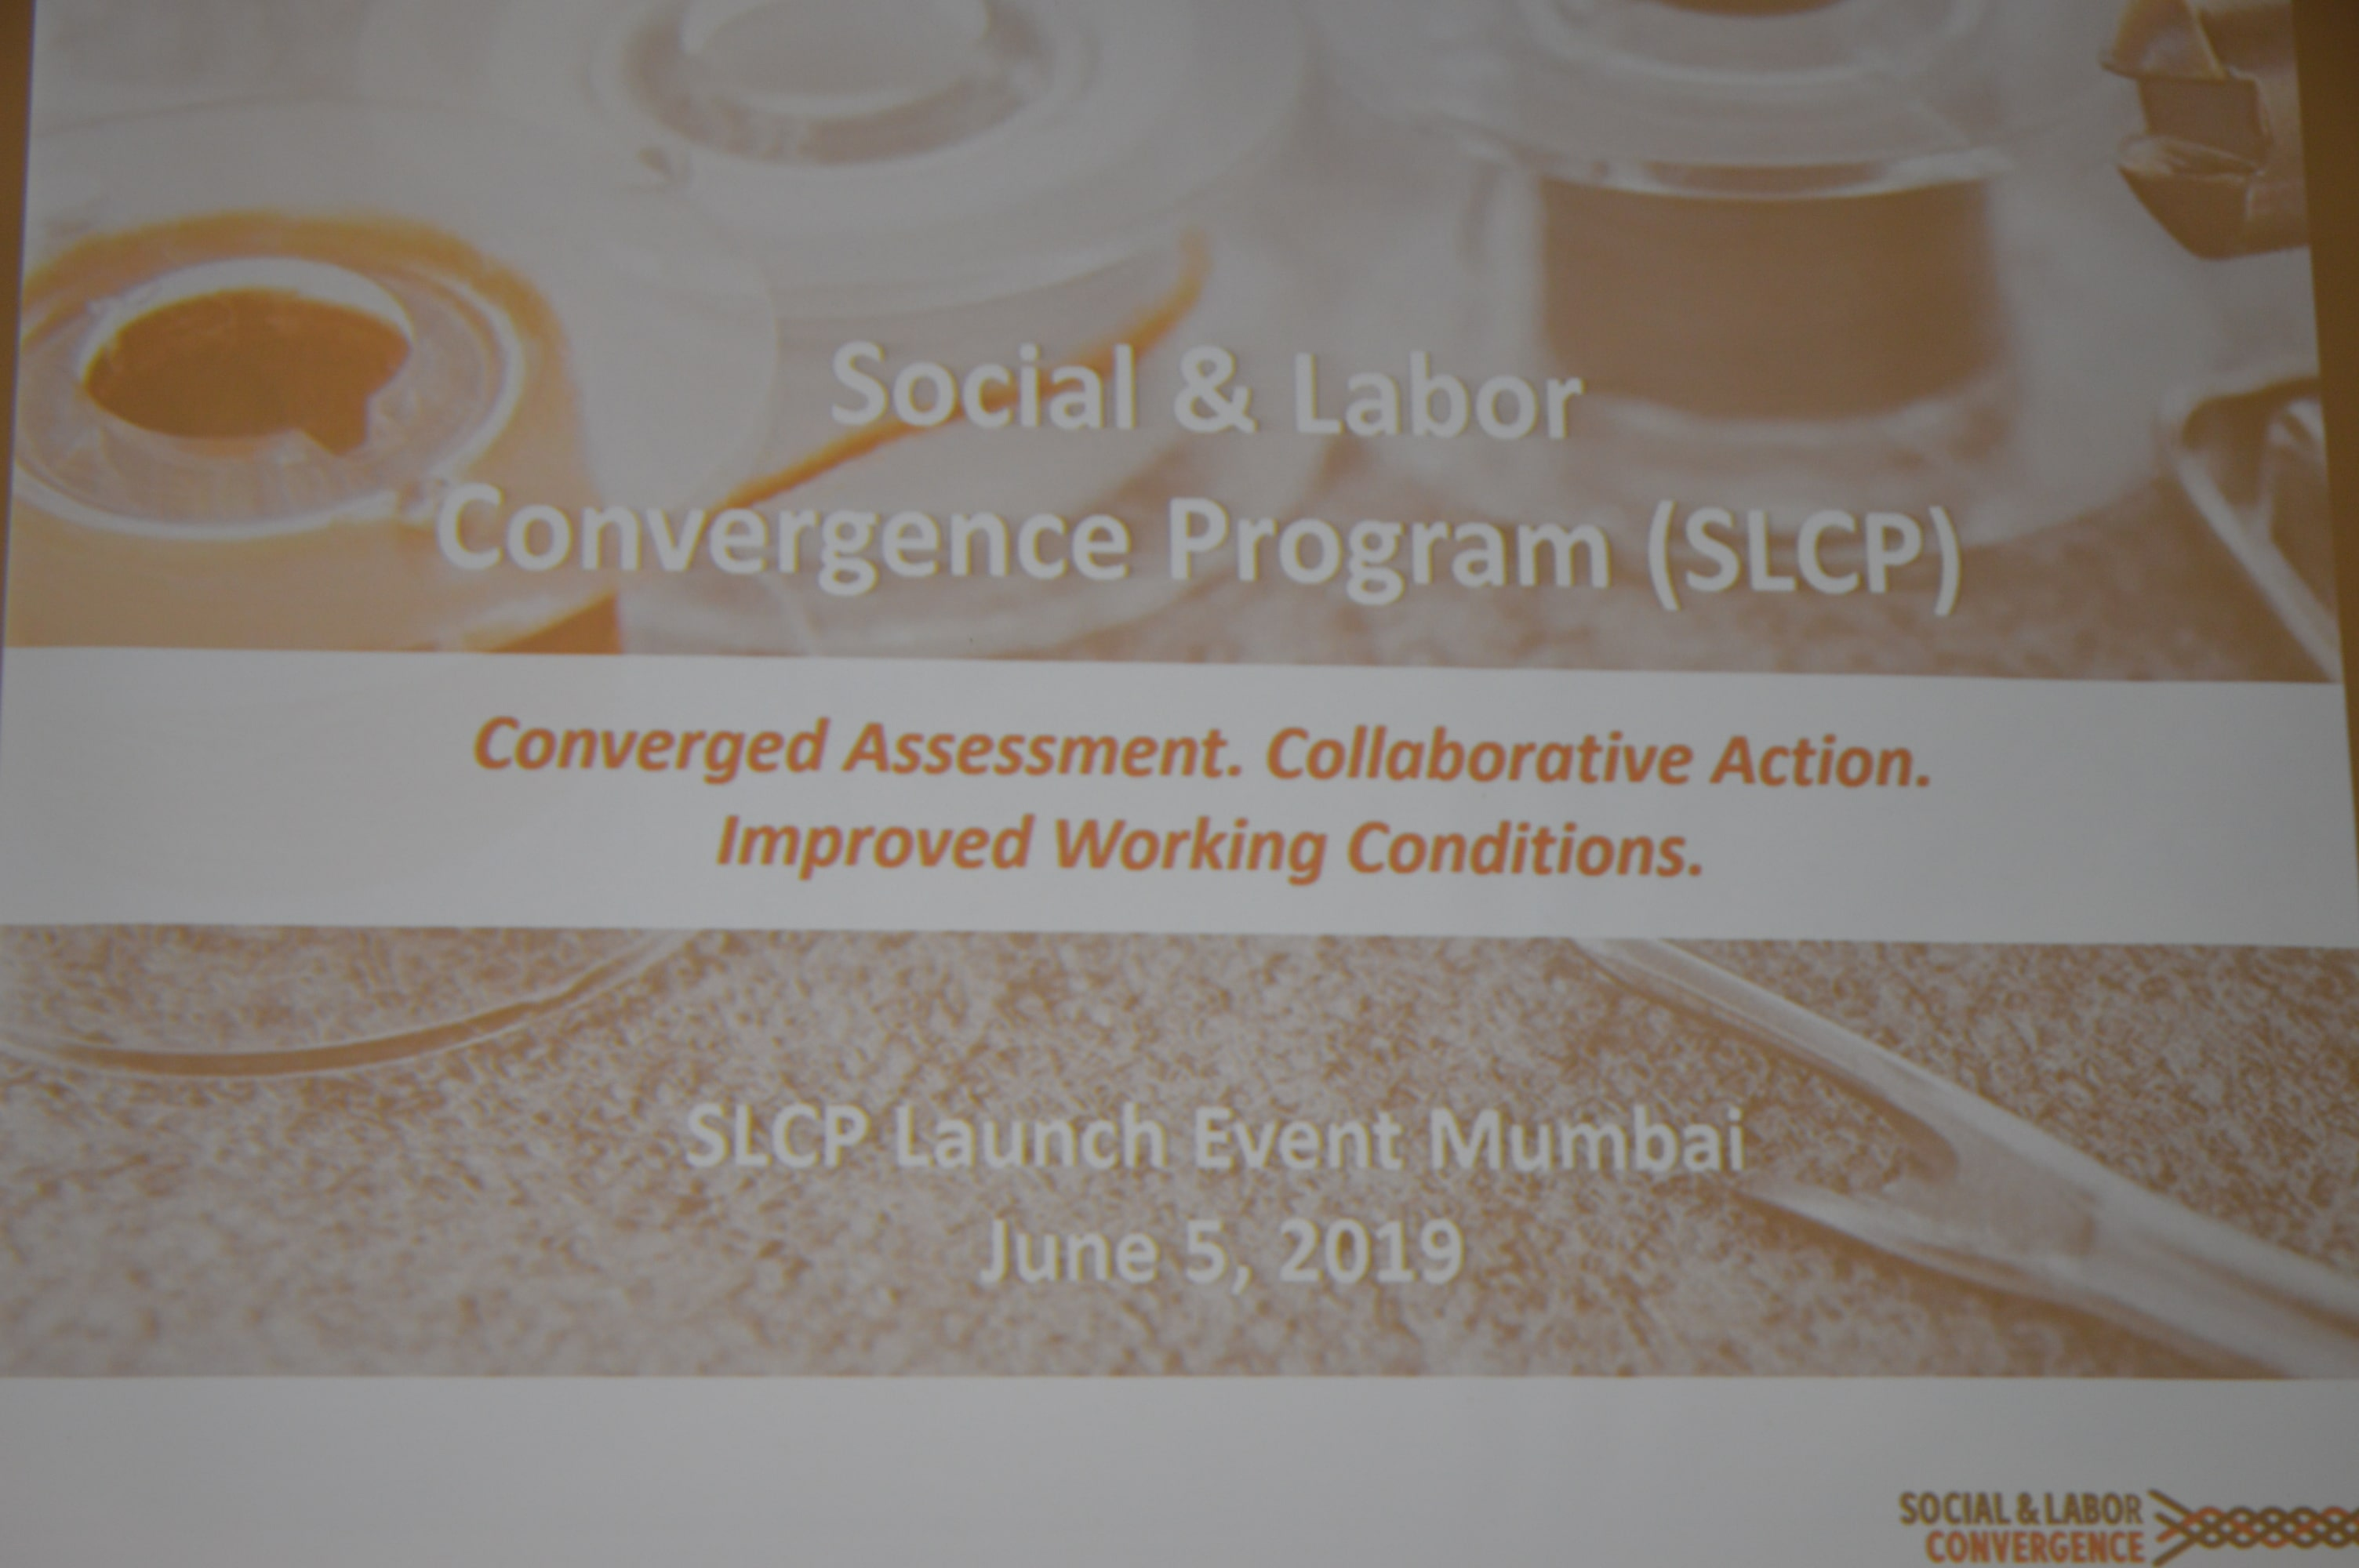 Social and Labor Convergence Program (SLCP) organised by TEXPROCIL launches its operations in Mumbai on June 5, 2019.